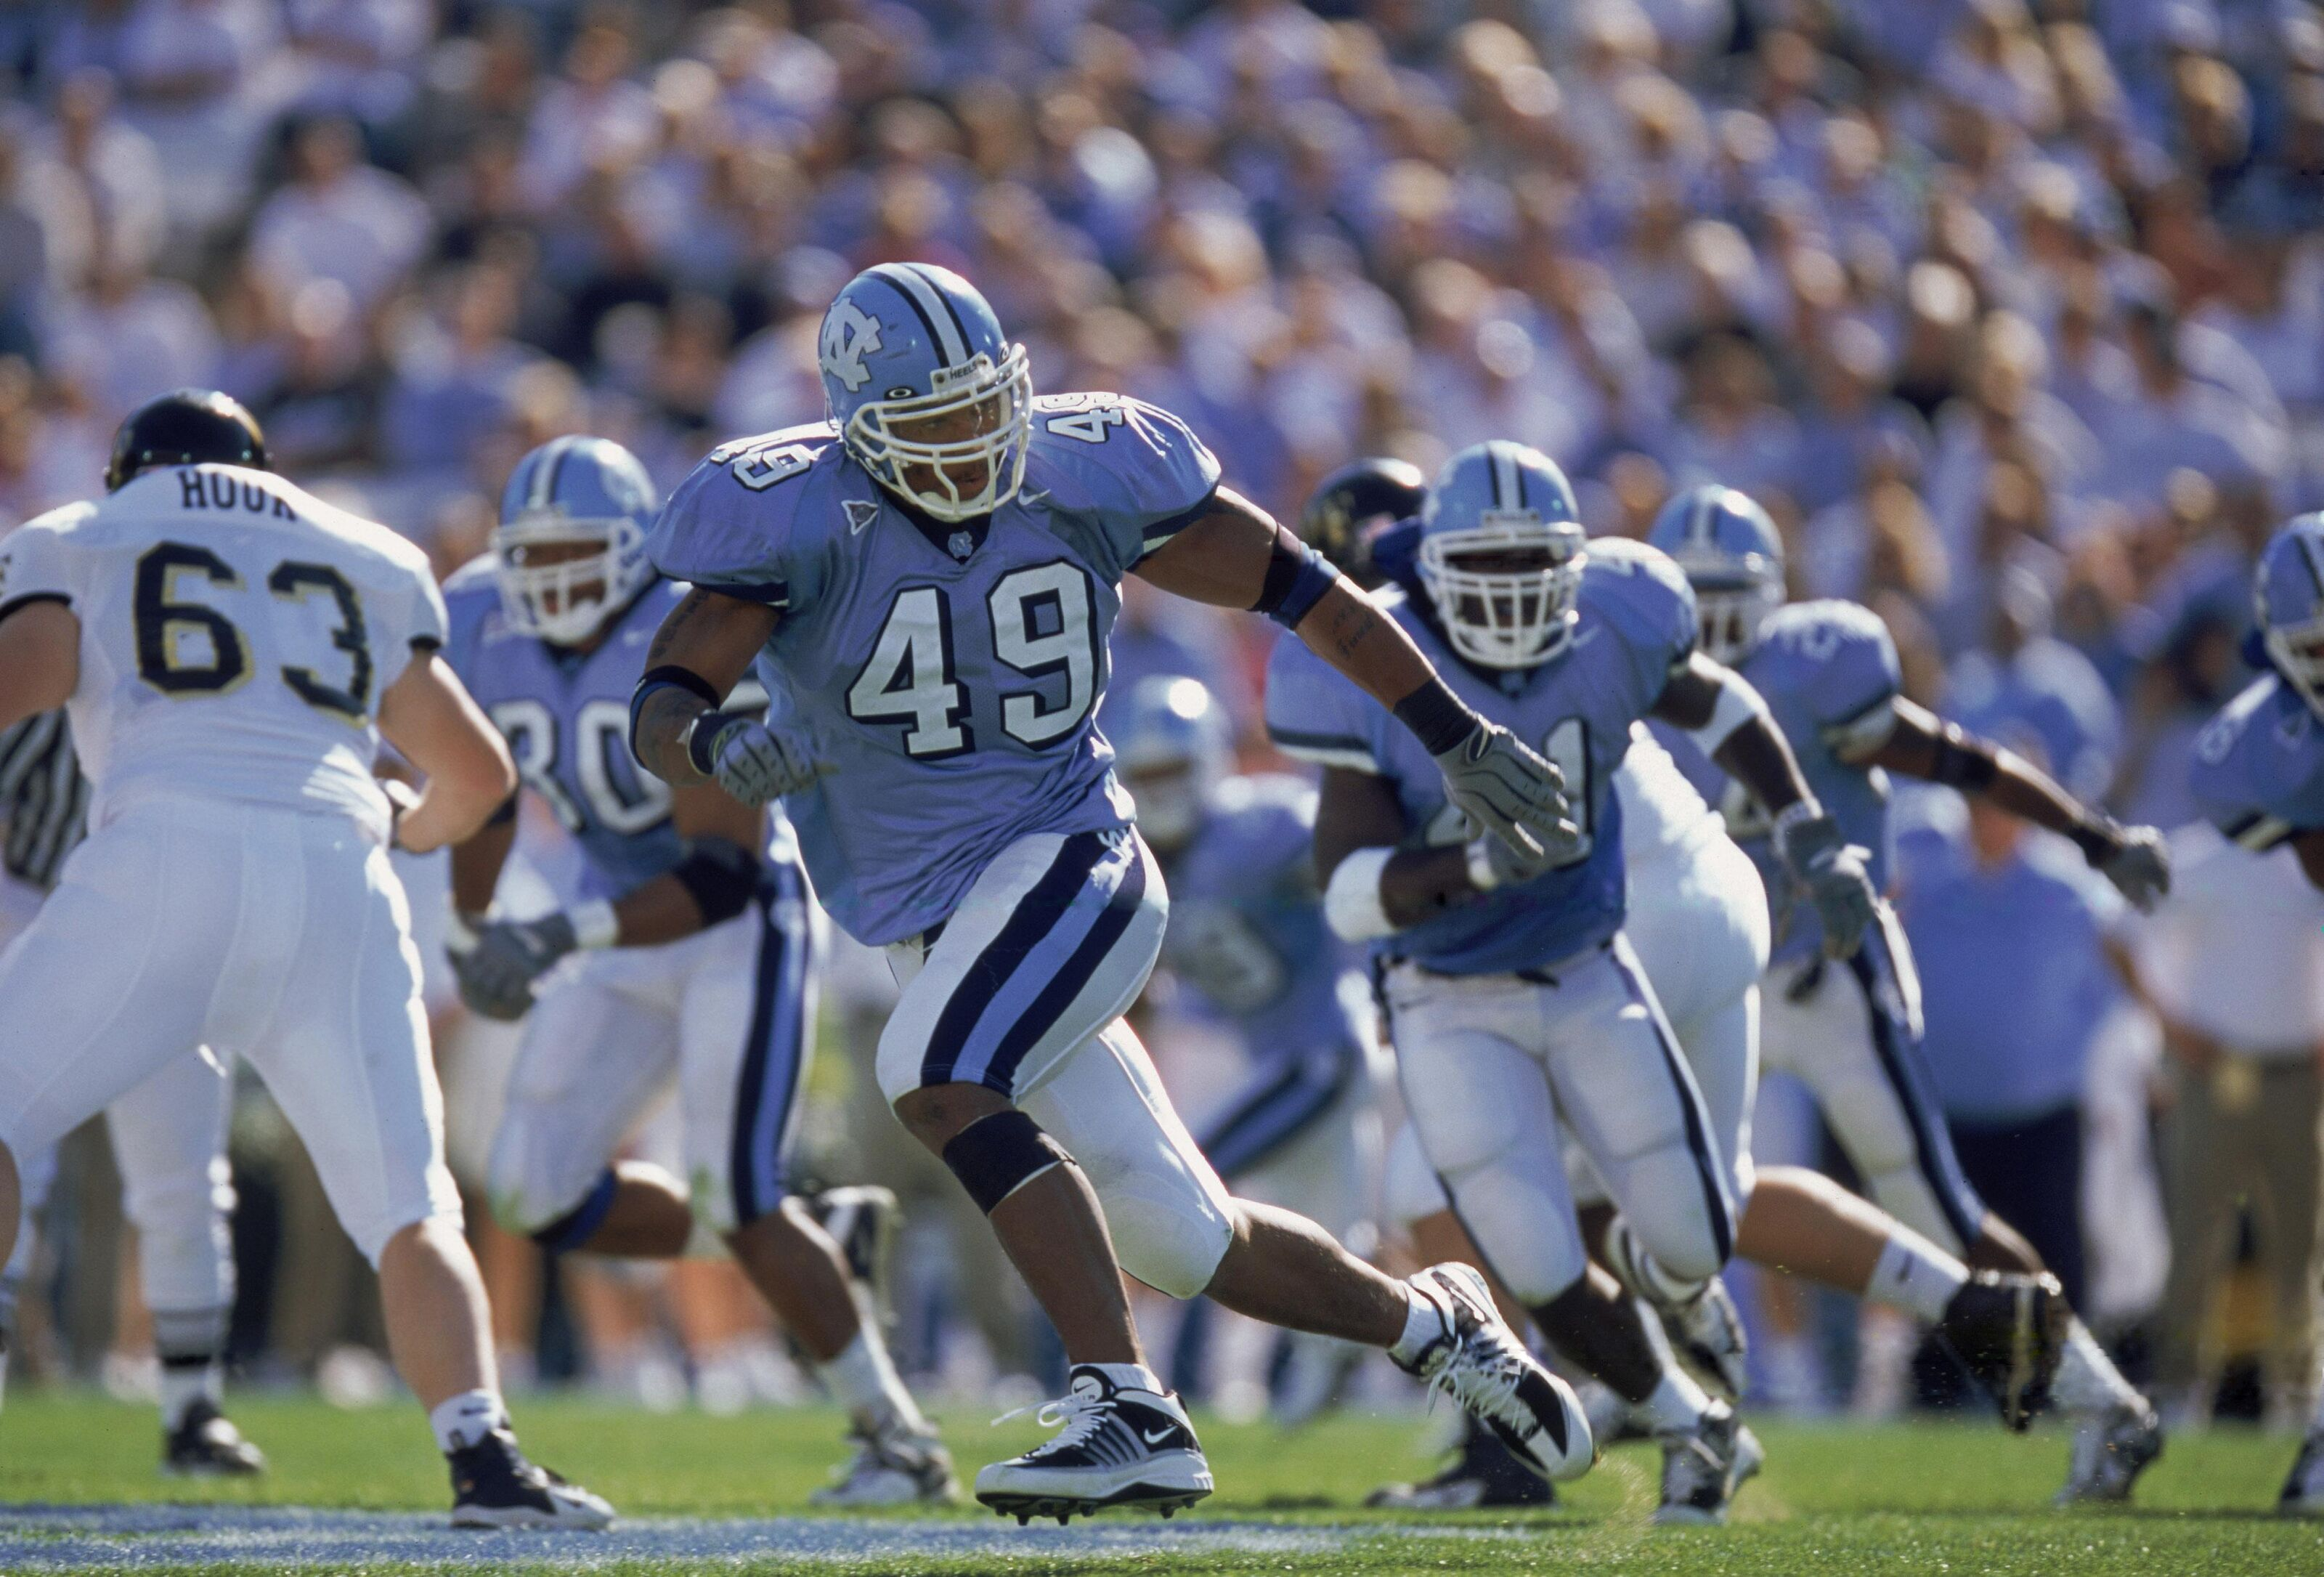 College Football: Three Tar Heels named to All-Time team